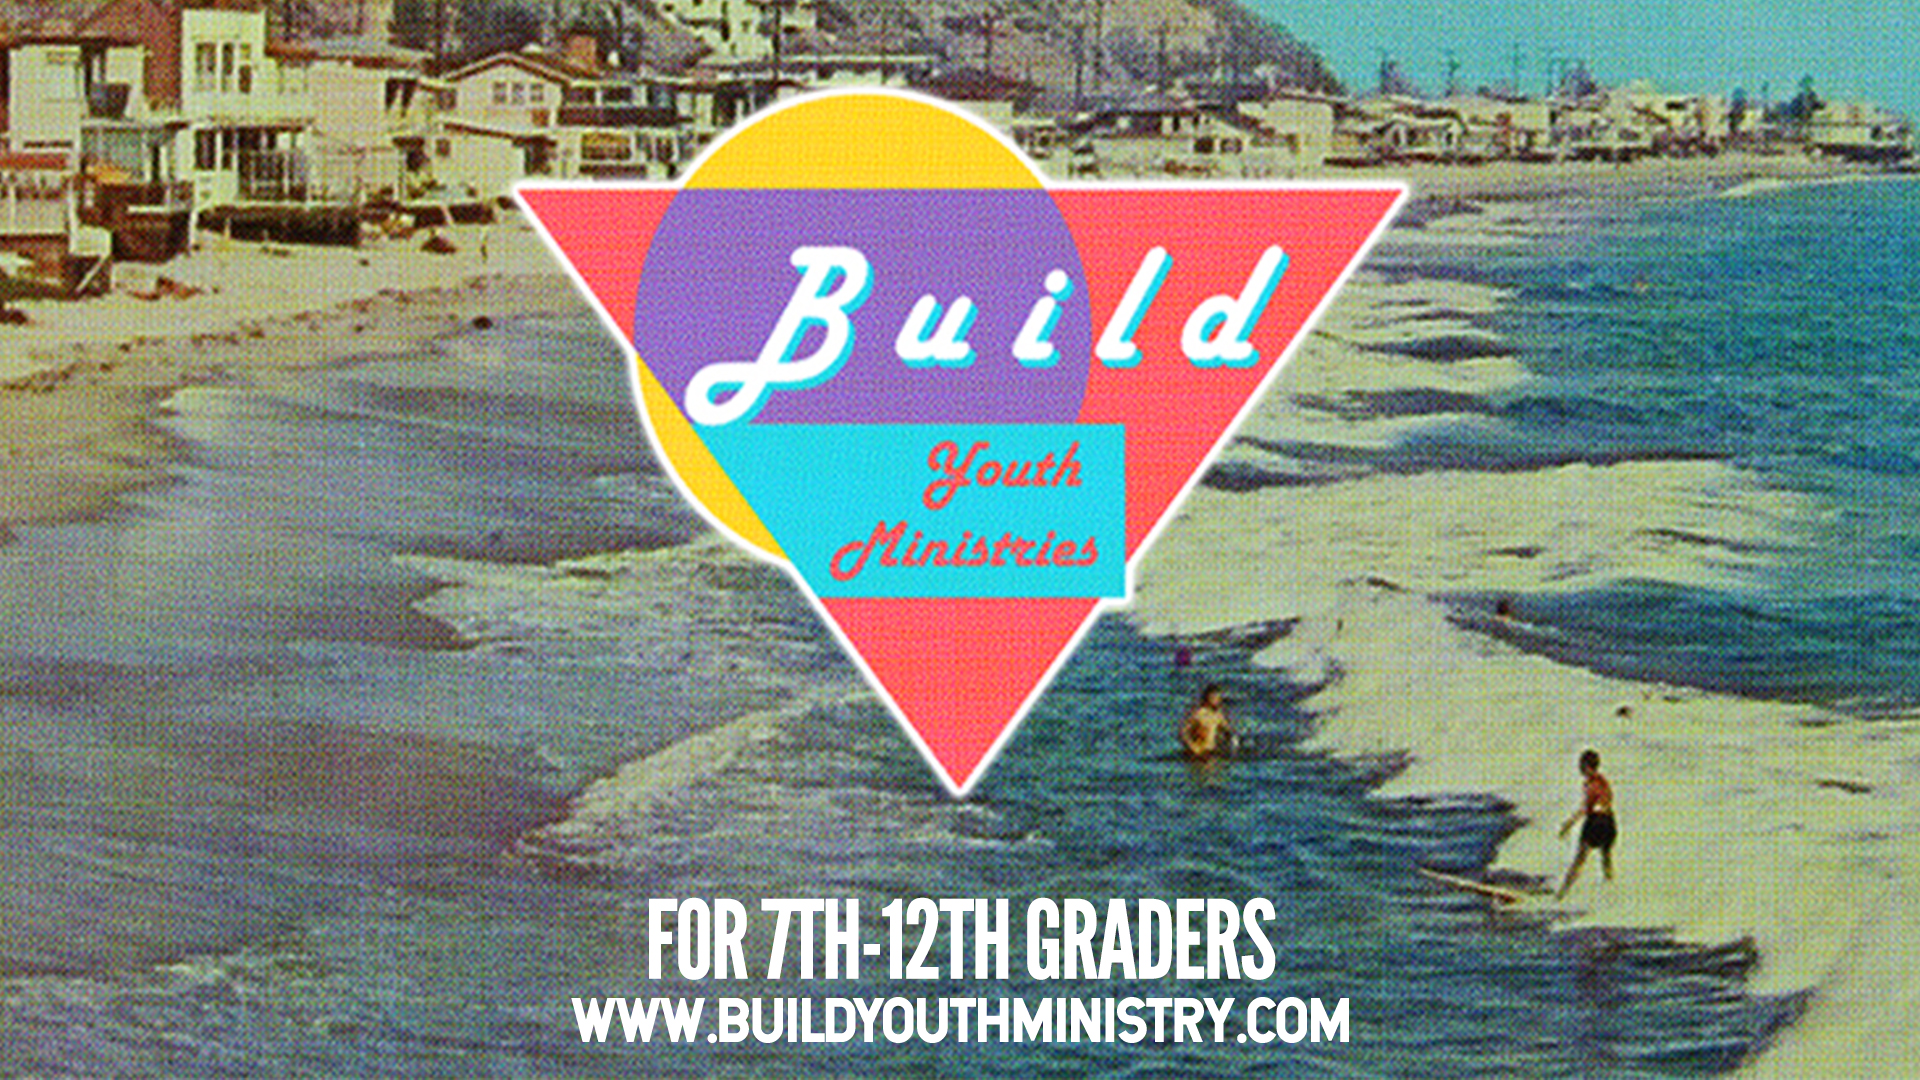 Build YOUTH AD